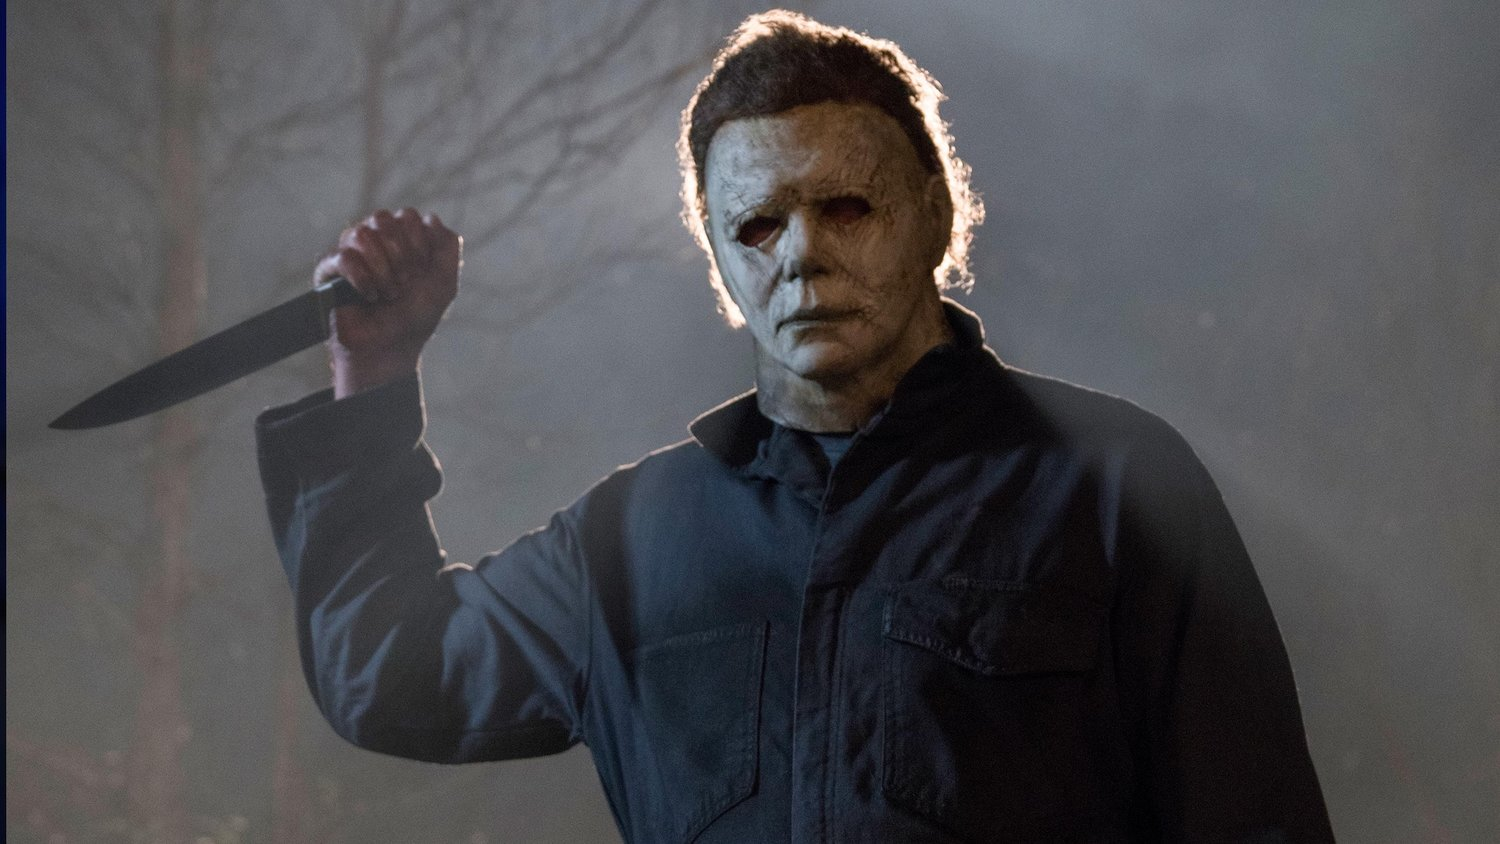 John Carpenter Halloween Score 2020 John Carpenter Returning to Score HALLOWEEN KILLS and HALLOWEEN